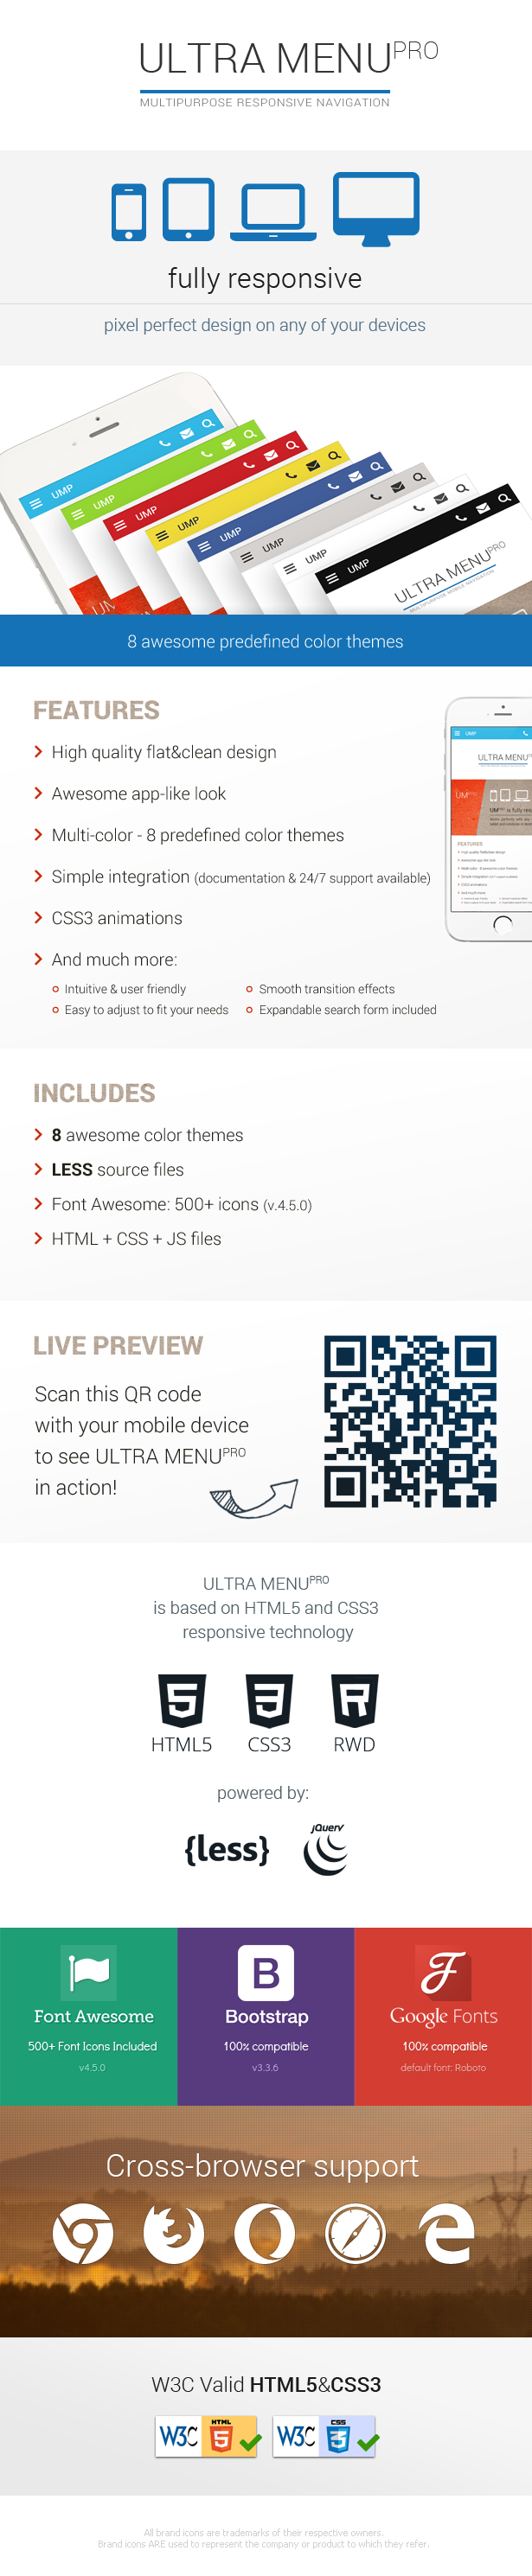 Multipurpose Responsive Navigation Menu - 4